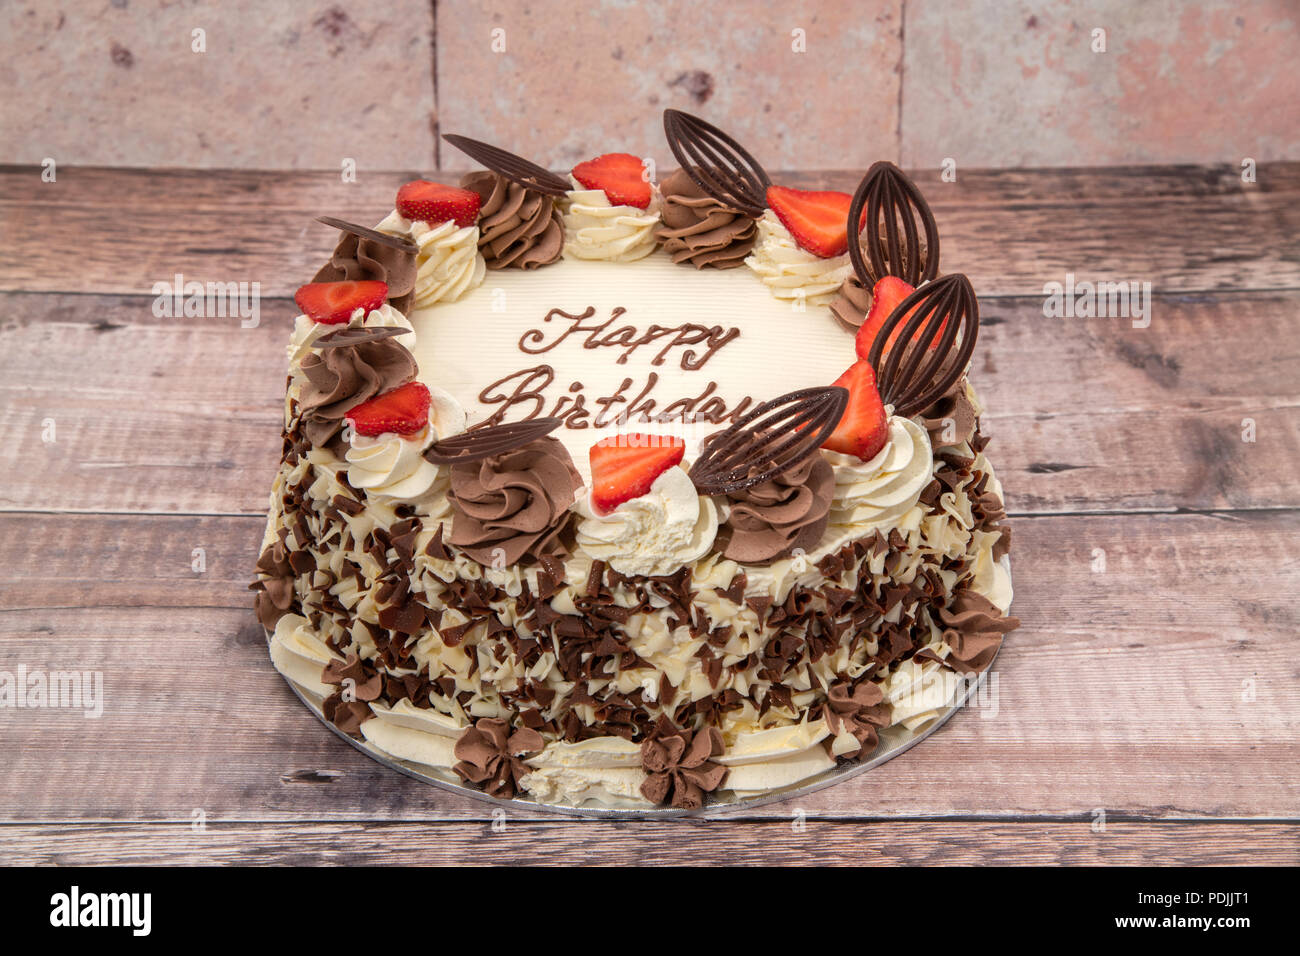 Birthday Cake Covered With Cream Strawberries And Chocolate